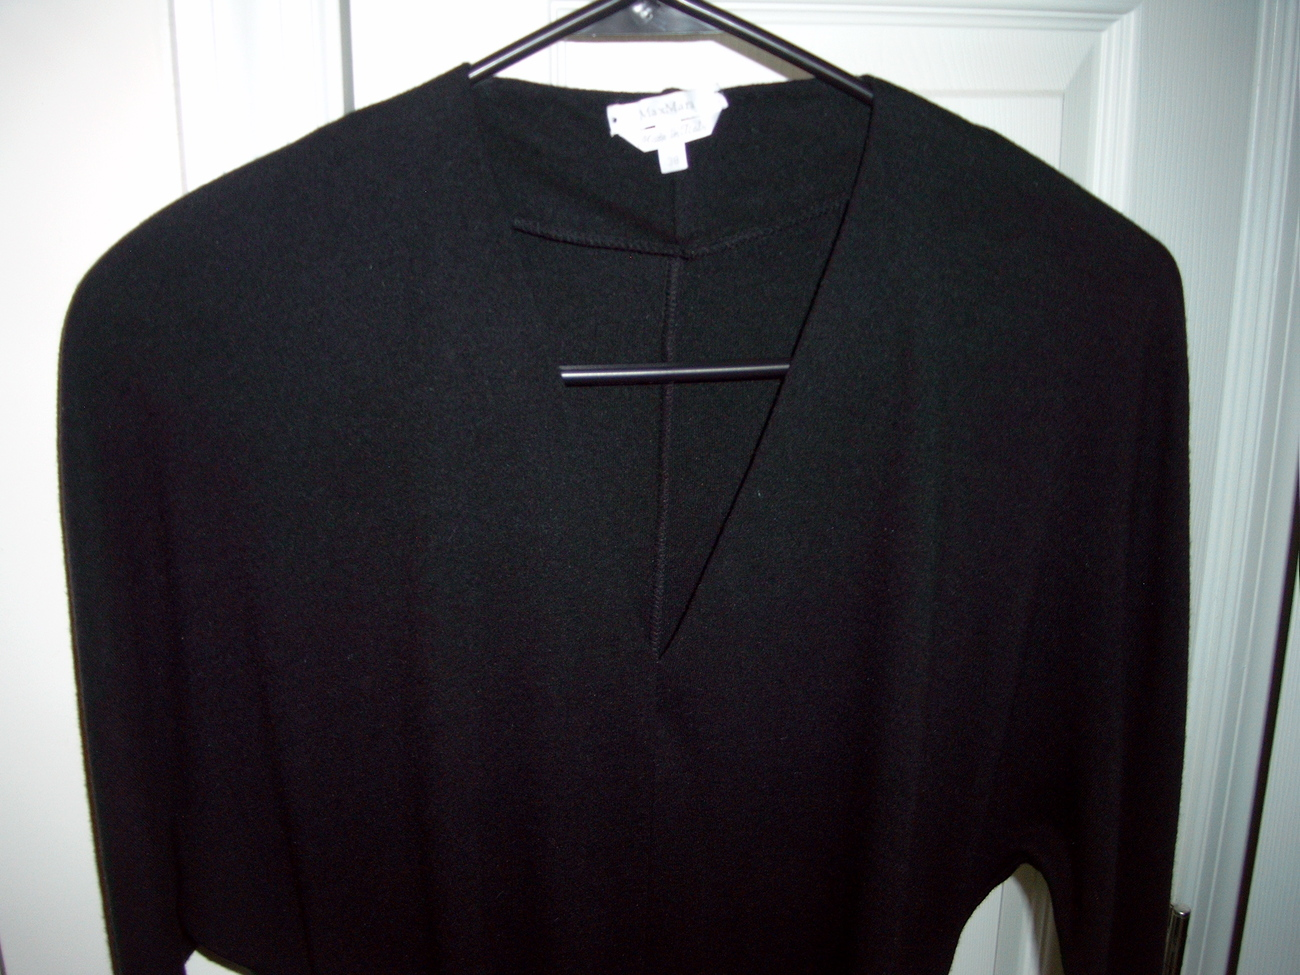 MAX MARA CLASSIC V-NECK BLACK WOOL FORMAL DRESS SIZE 38 Max Mara